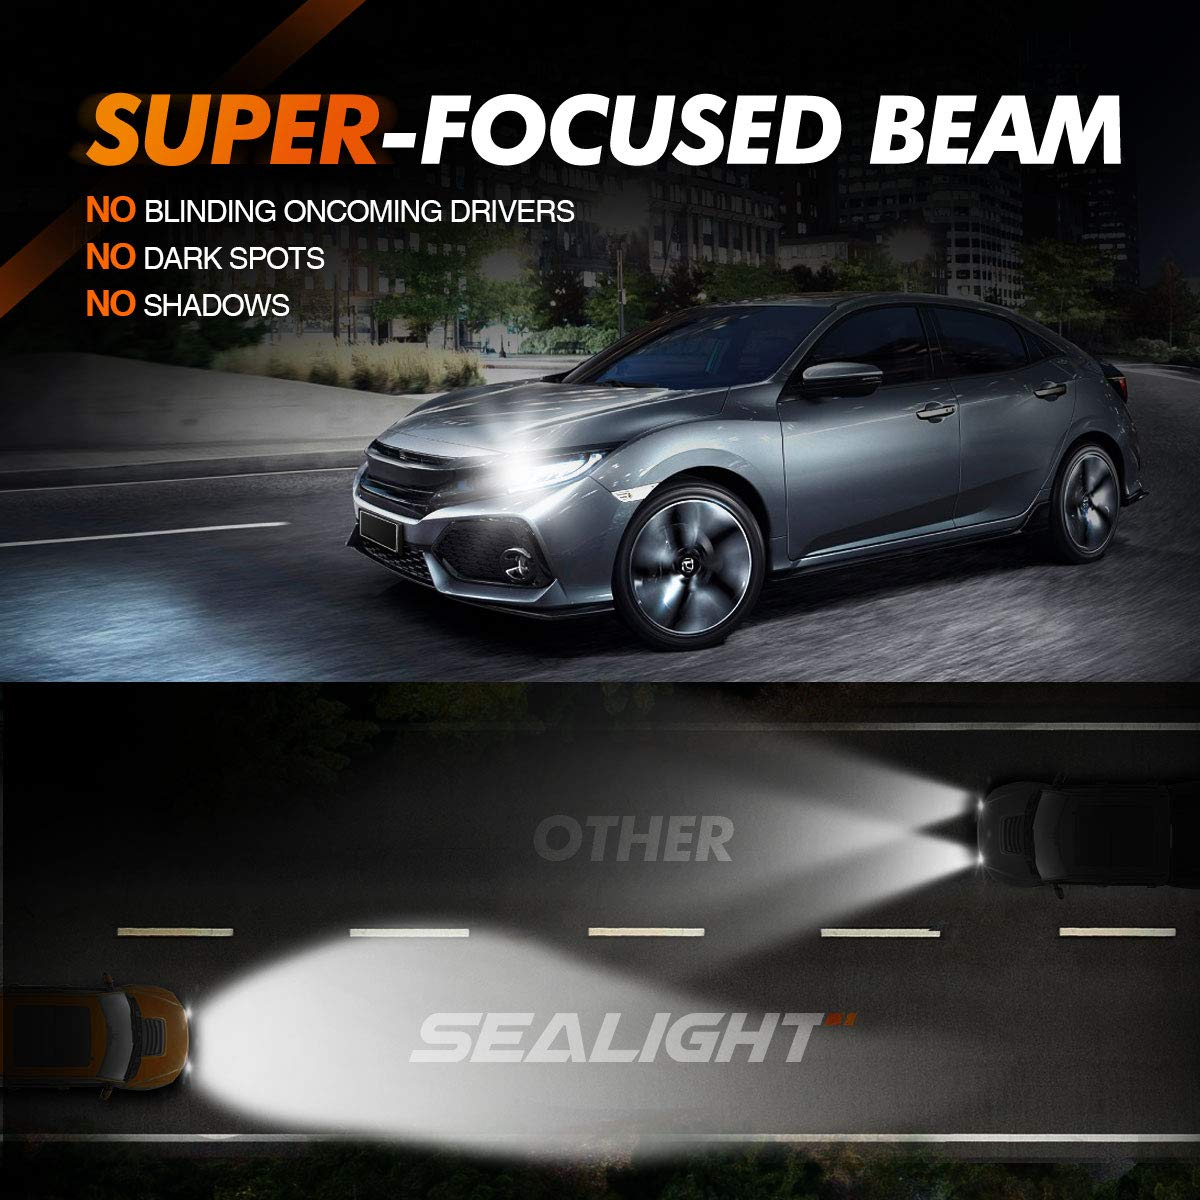 6000K Bright White Low Beam//Fog Light Quick Installation SEALIGHT Scoparc S1 H11//H8//H9 LED Headlight Bulbs Halogen Replacement